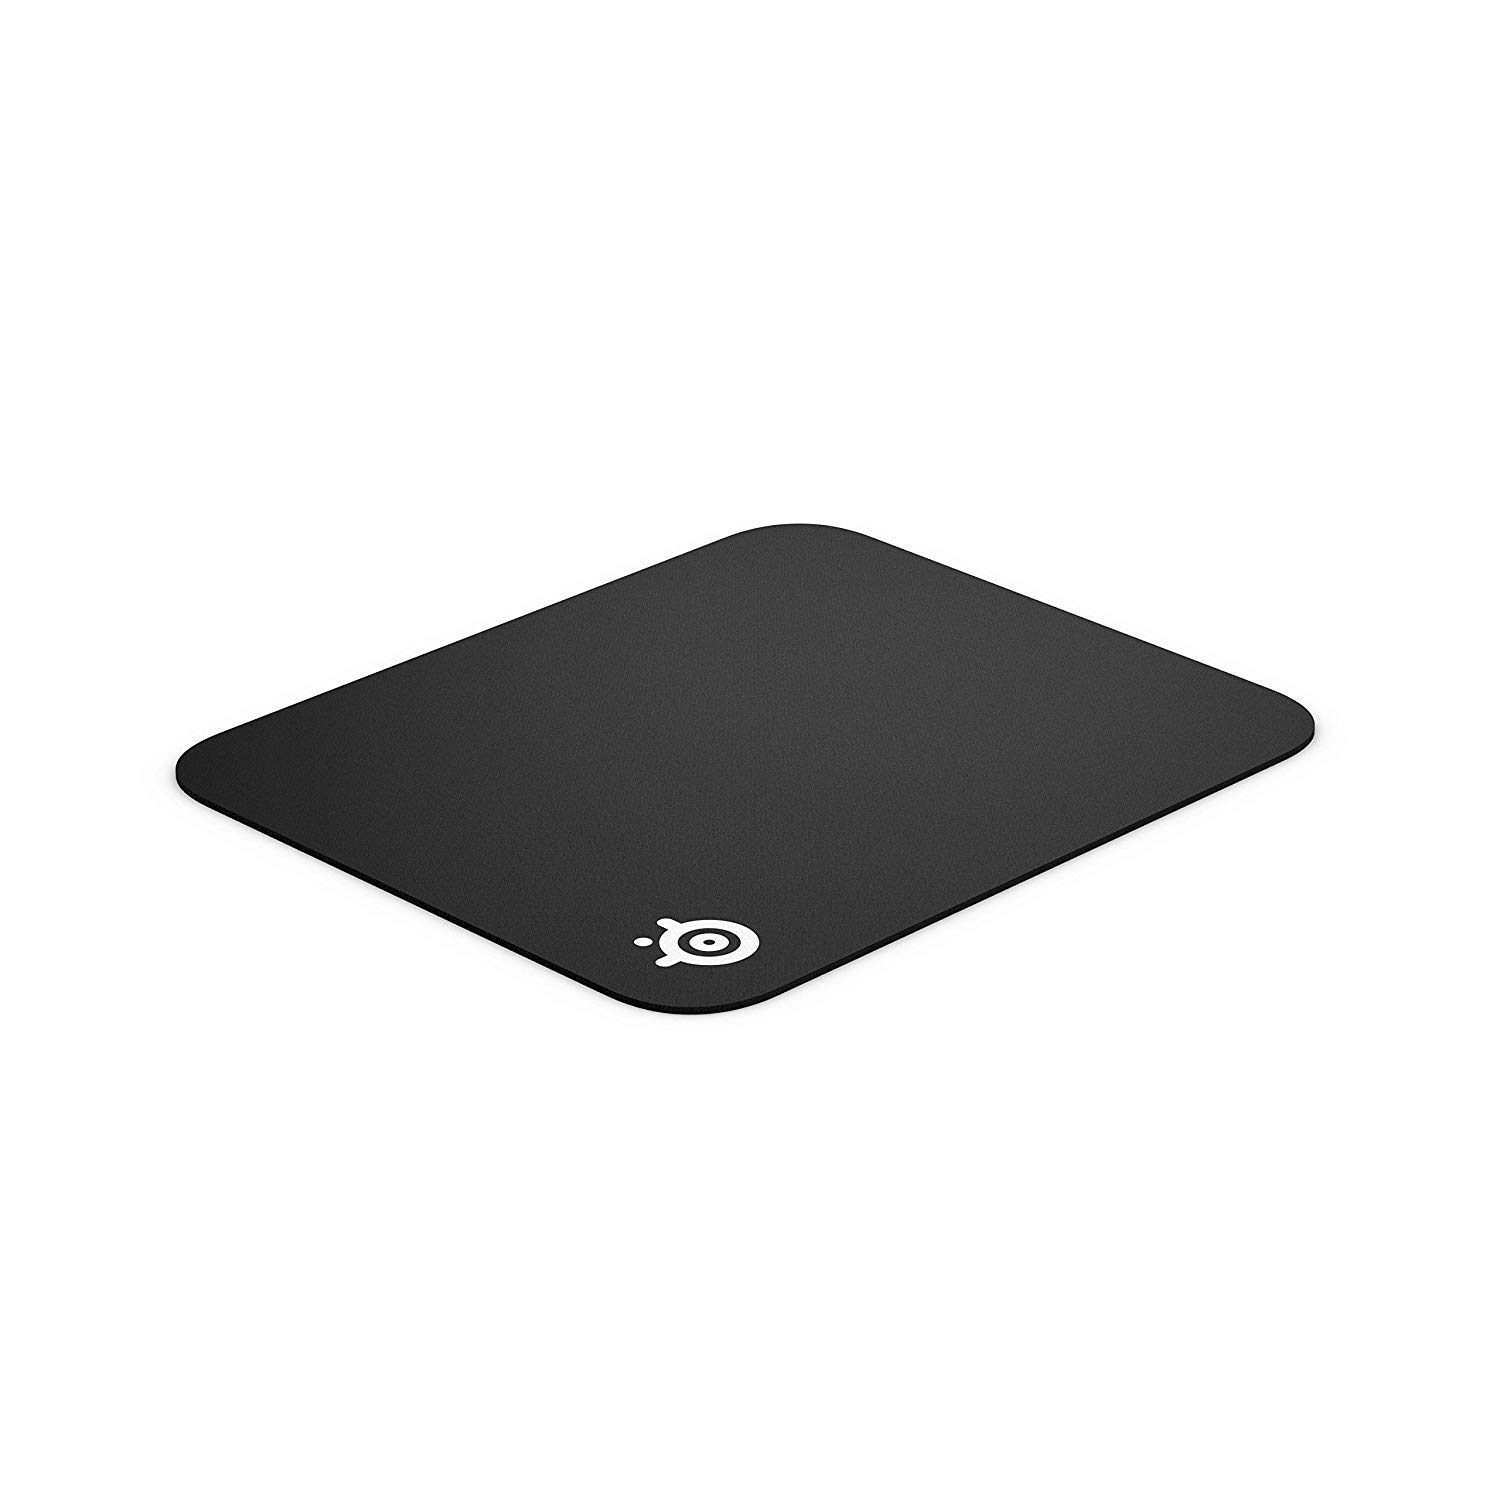 SteelSeries QcK Gaming Surface - Small Cloth - Best Selling Mouse Pad of All Time - Optimized For Gaming Sensors